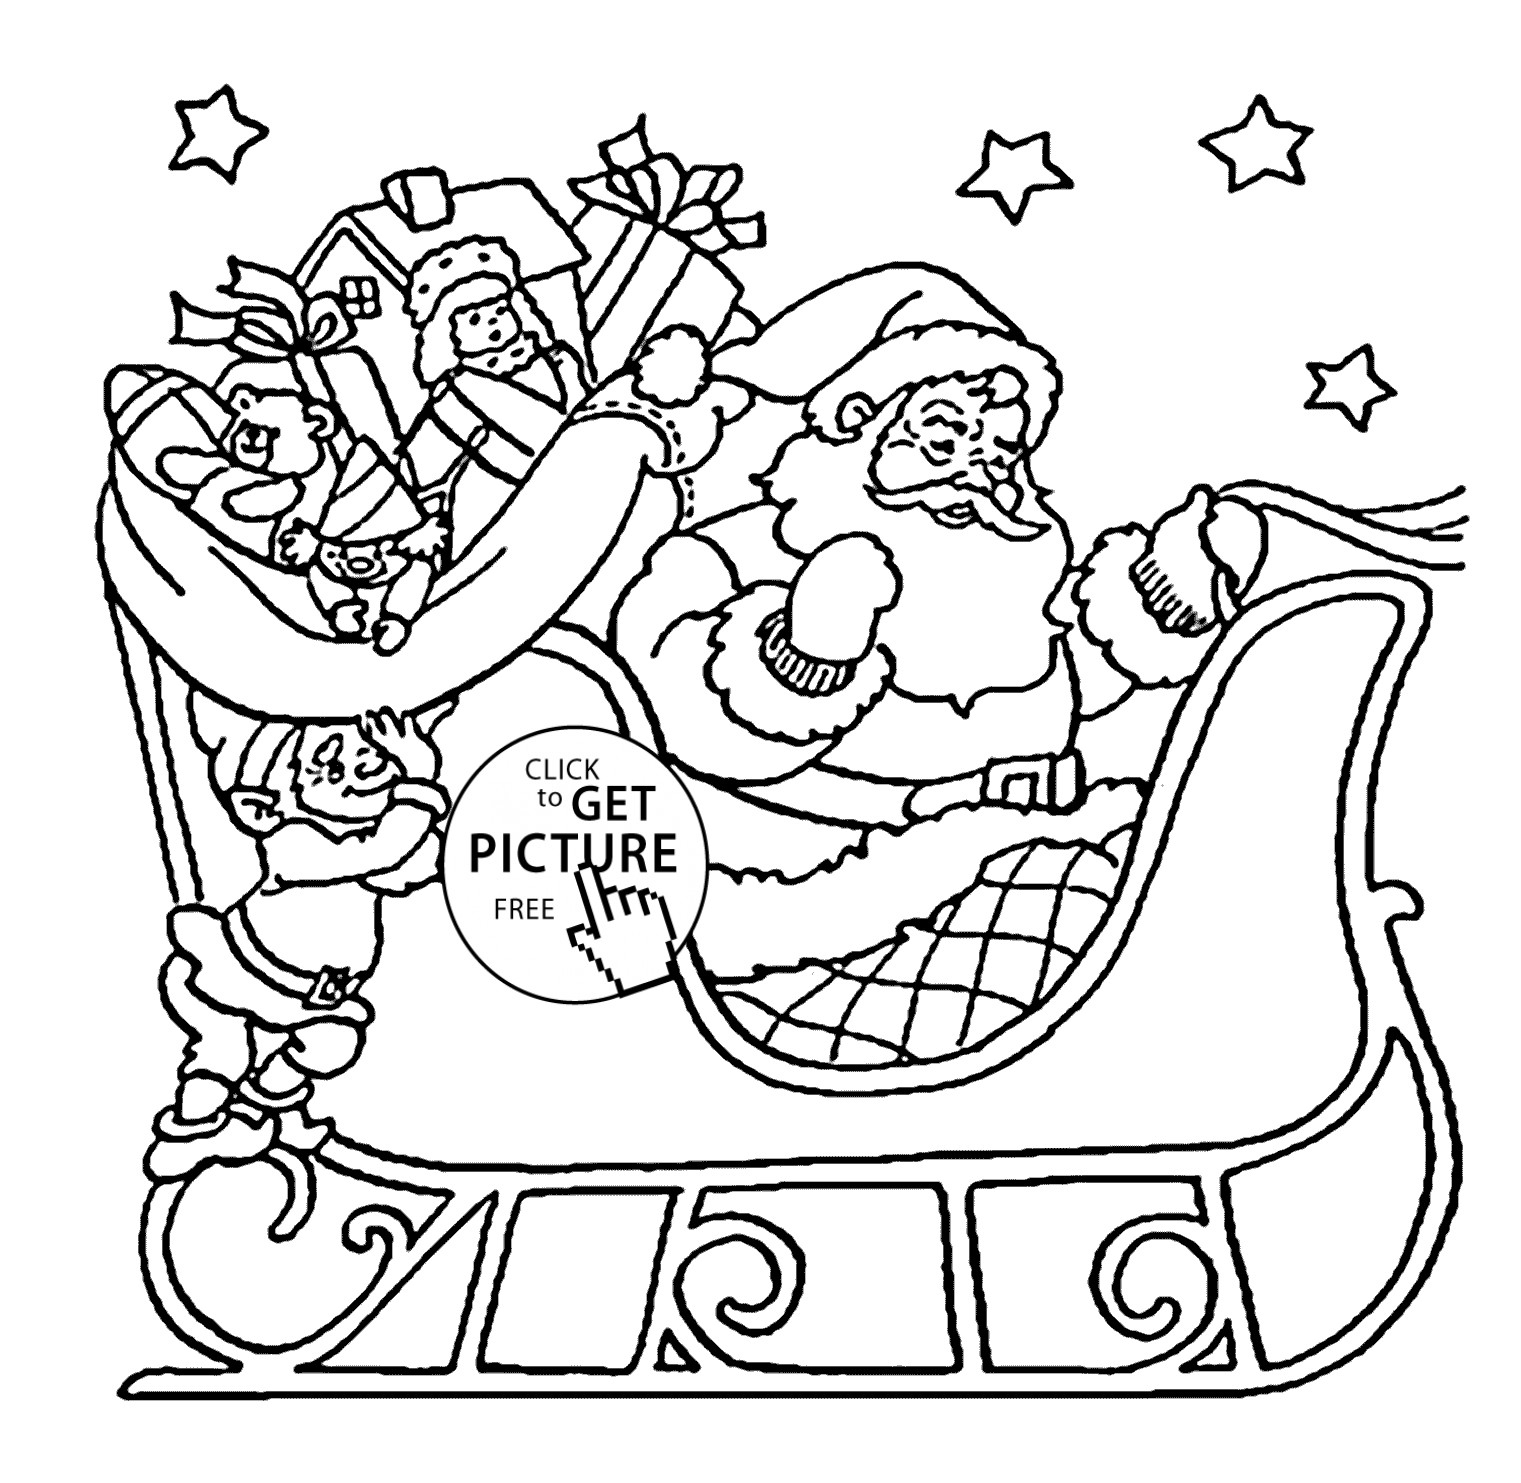 Kids Christmas Santa Claus Coloring Page Sheets With Pages Gallery Free Books